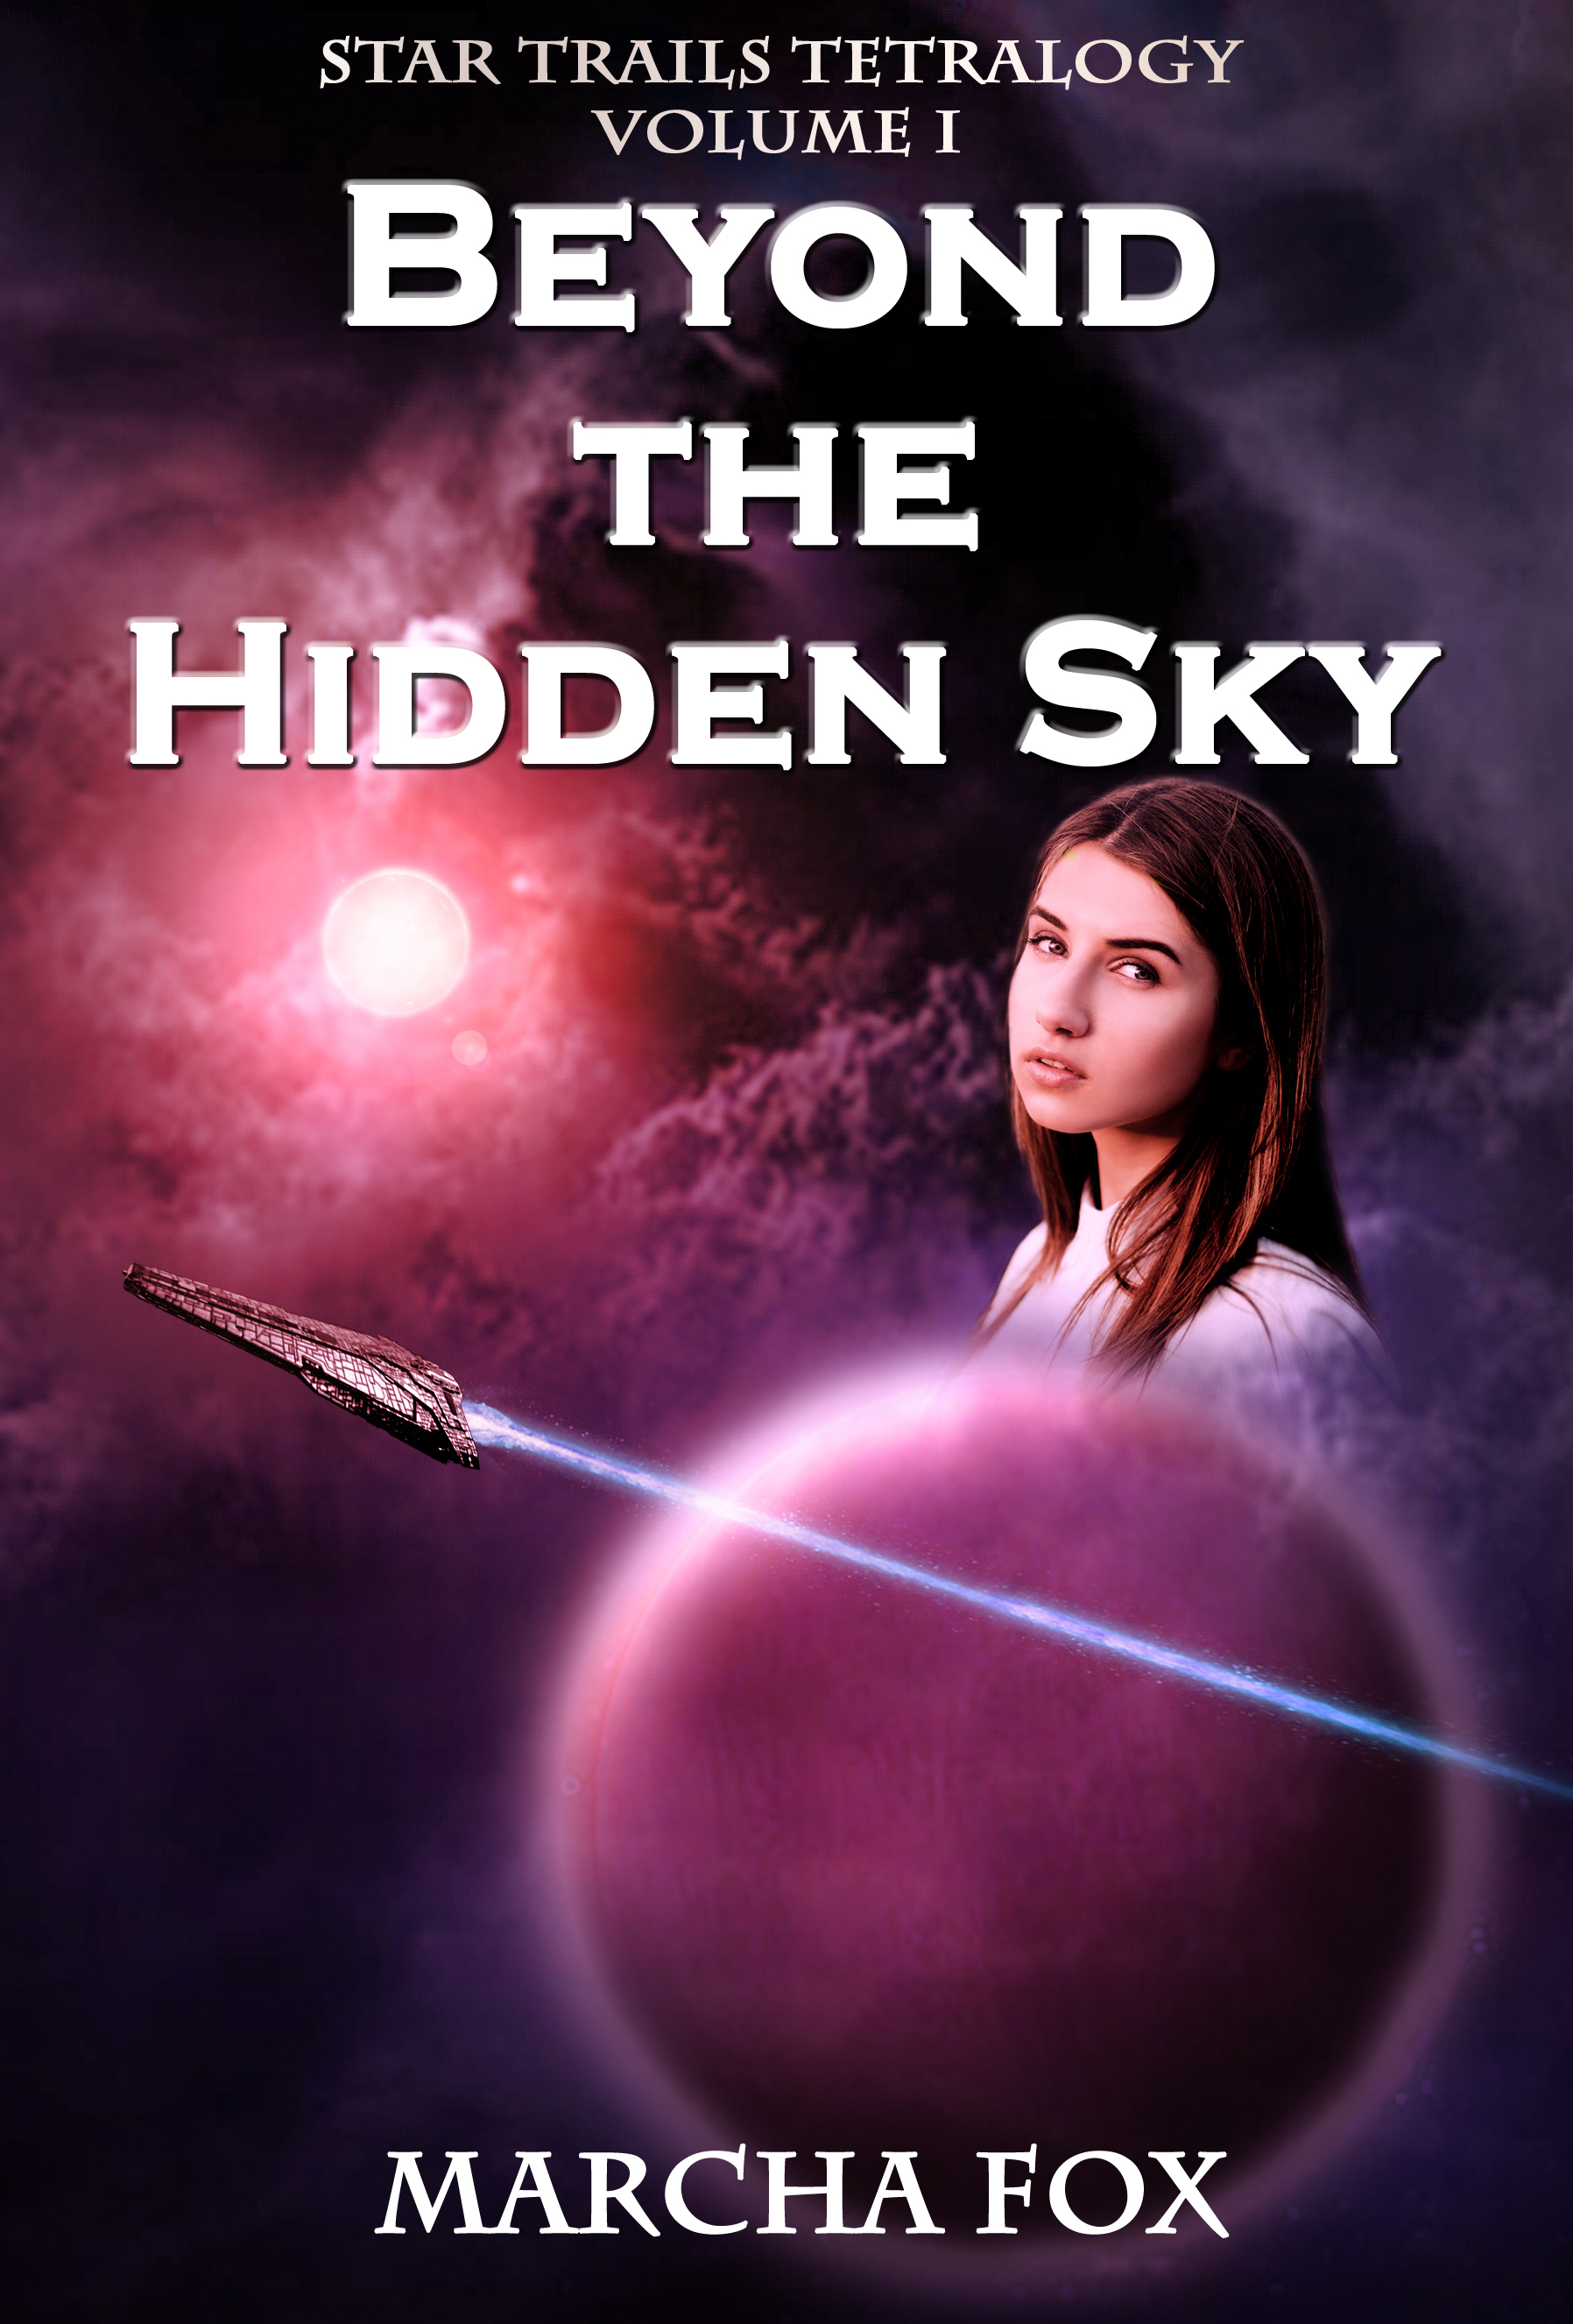 Beyond the Hidden Sky